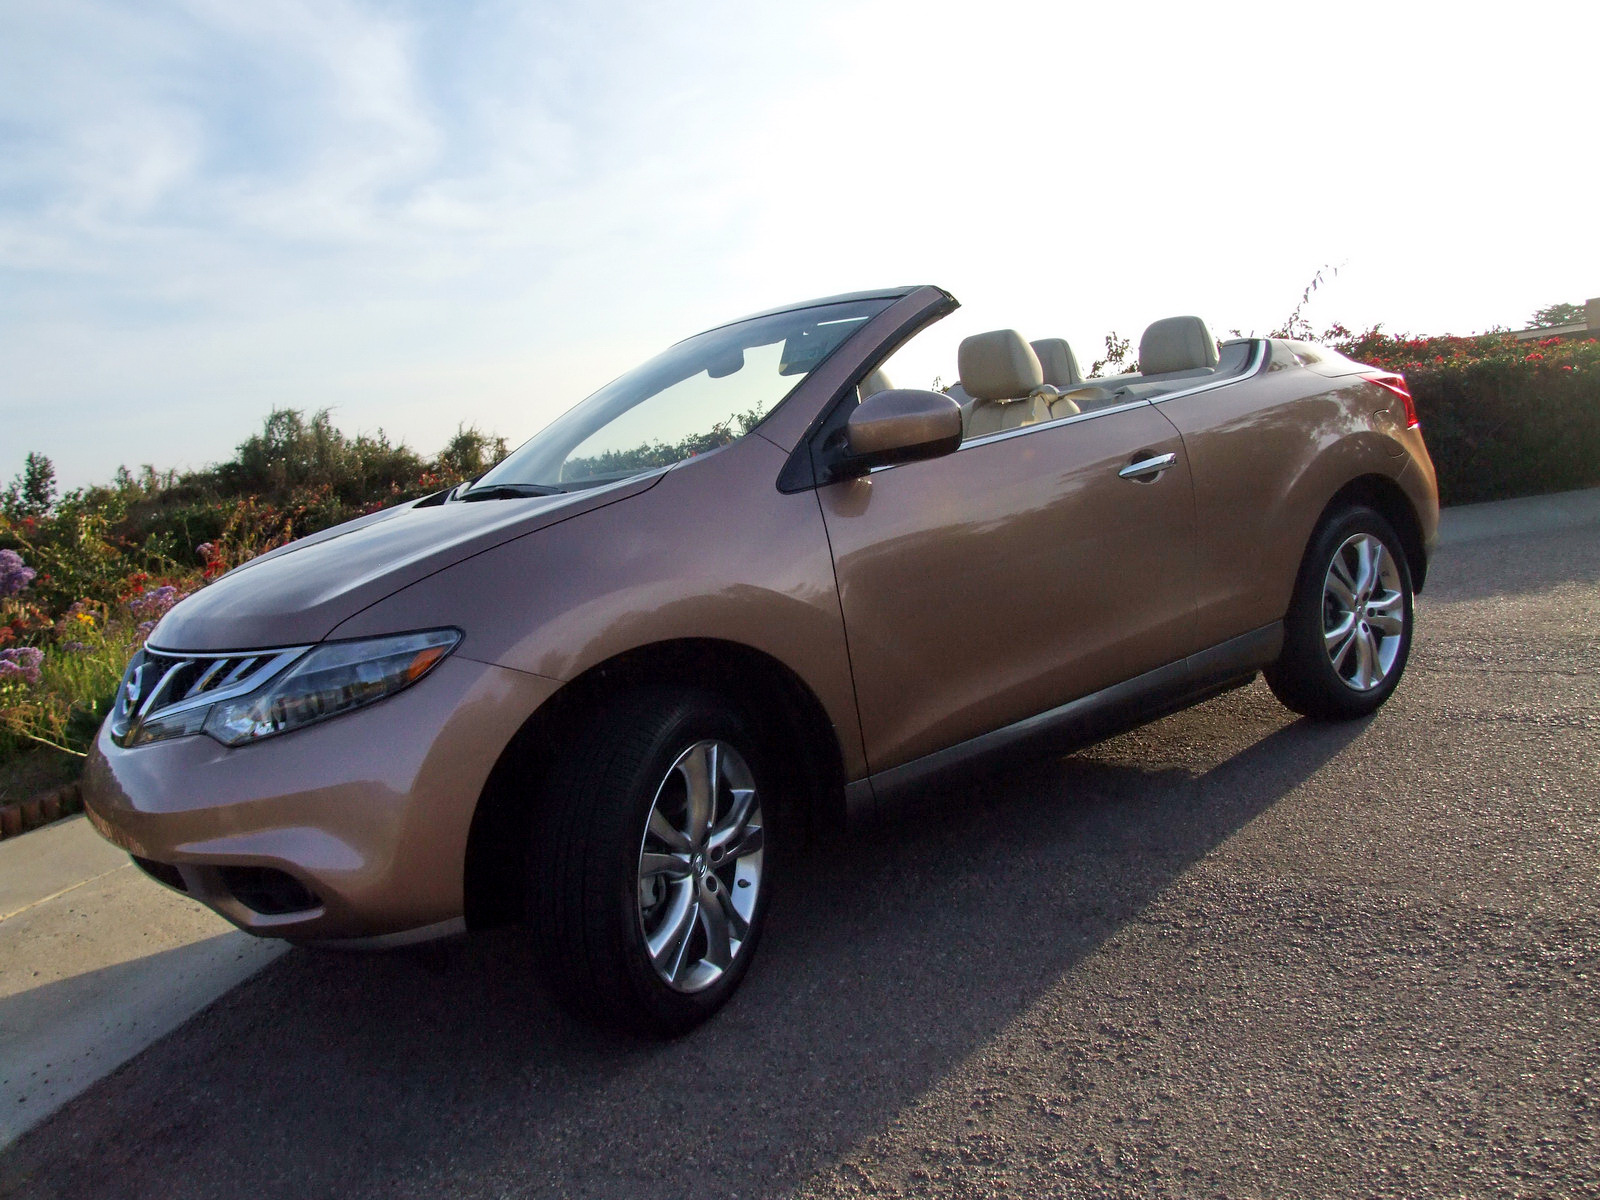 2010 - [Nissan] Murano CrossCabriolet - Page 4 2011-Nissan-Murano-CC-TD-619